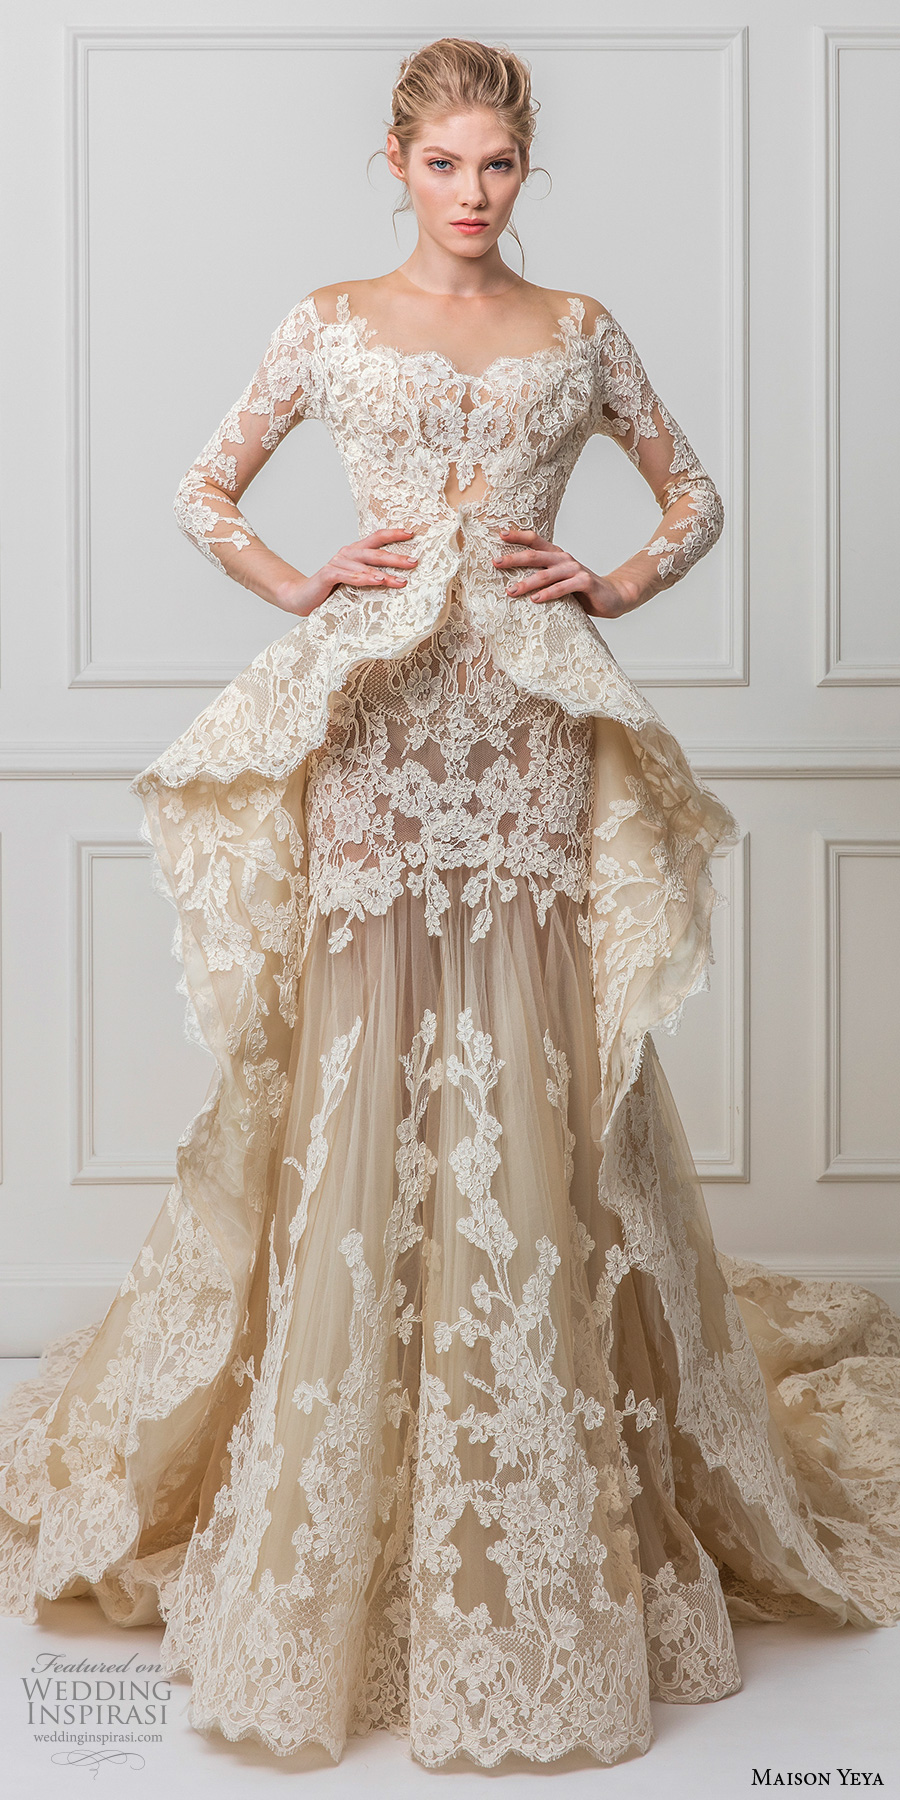 Maison Yeya 2017 Bridal Three Quarter Sleeves Illusion Jewel Off The Shoulder Full Embellishment Peplum Ivory